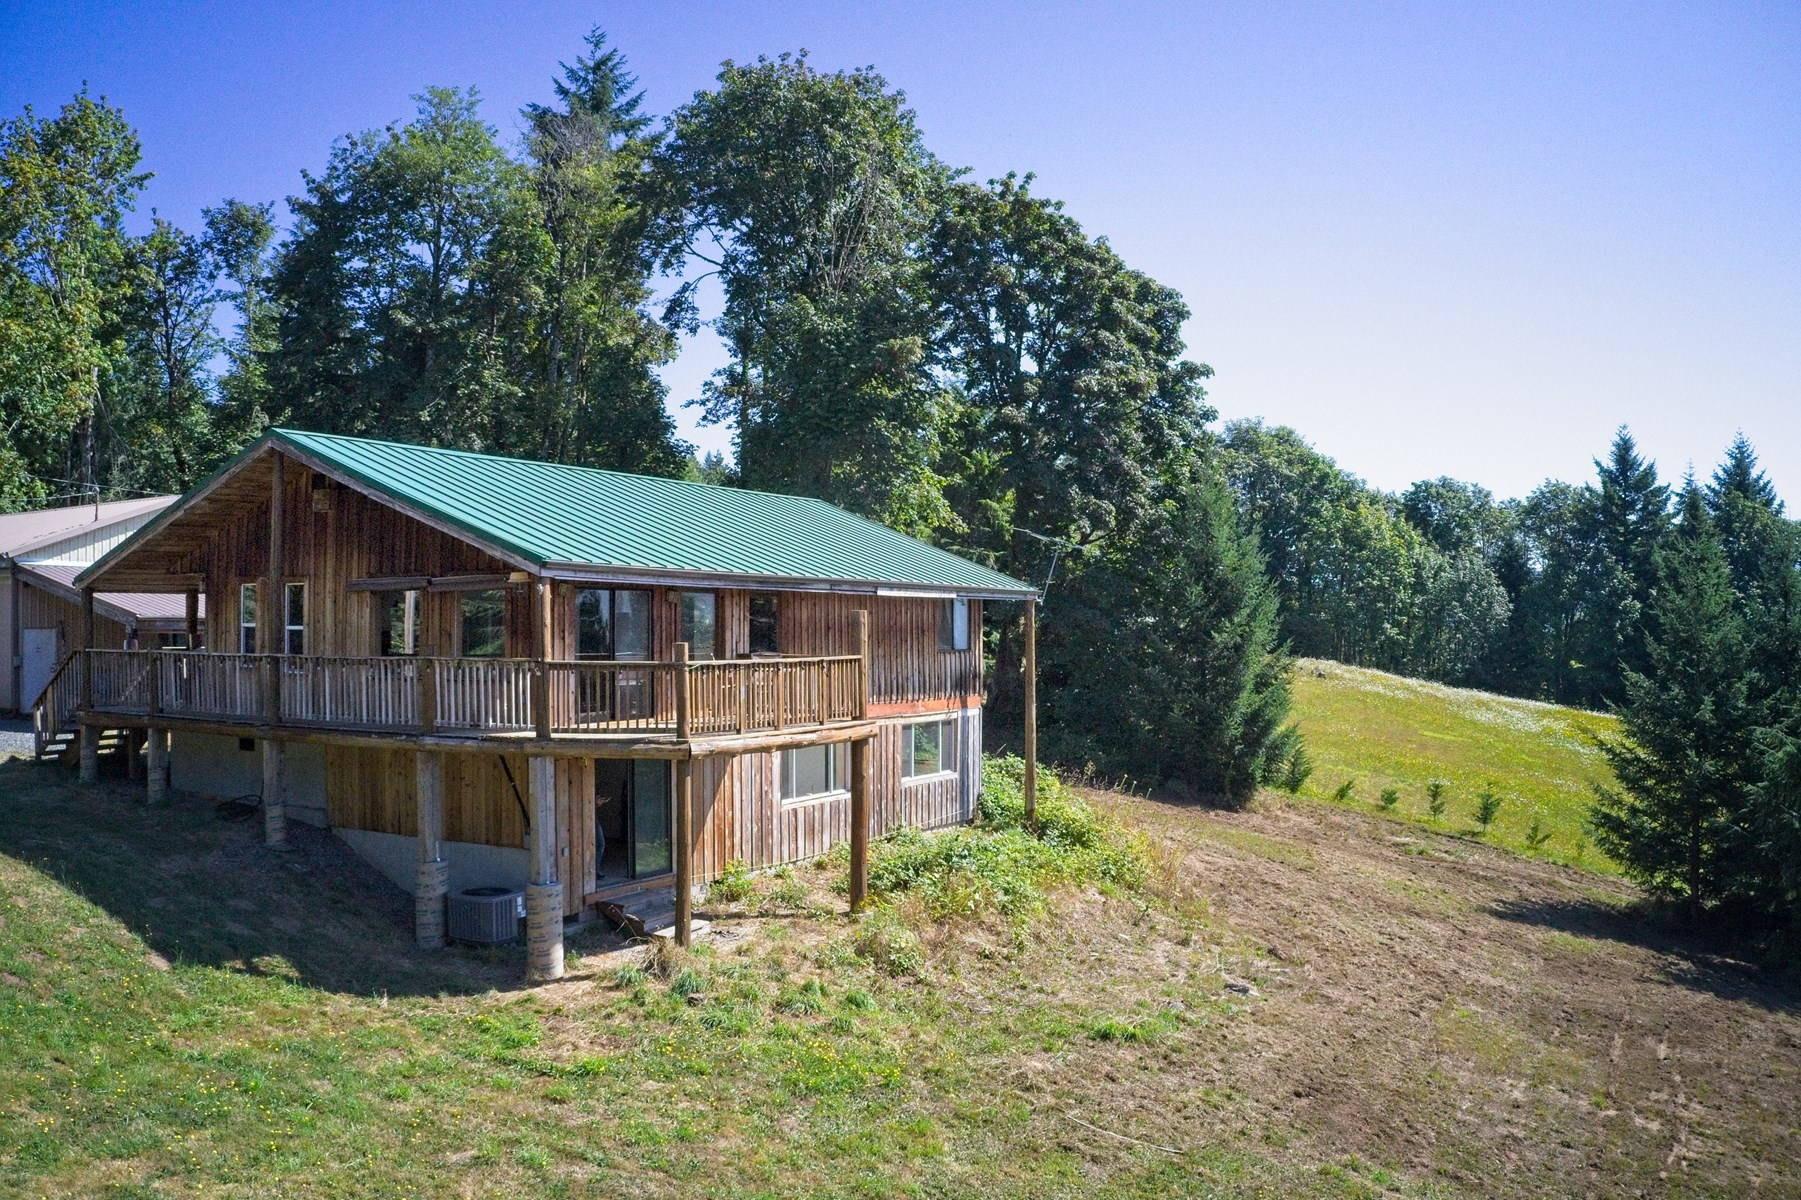 Country Home on acreage for sale in Amboy Washington